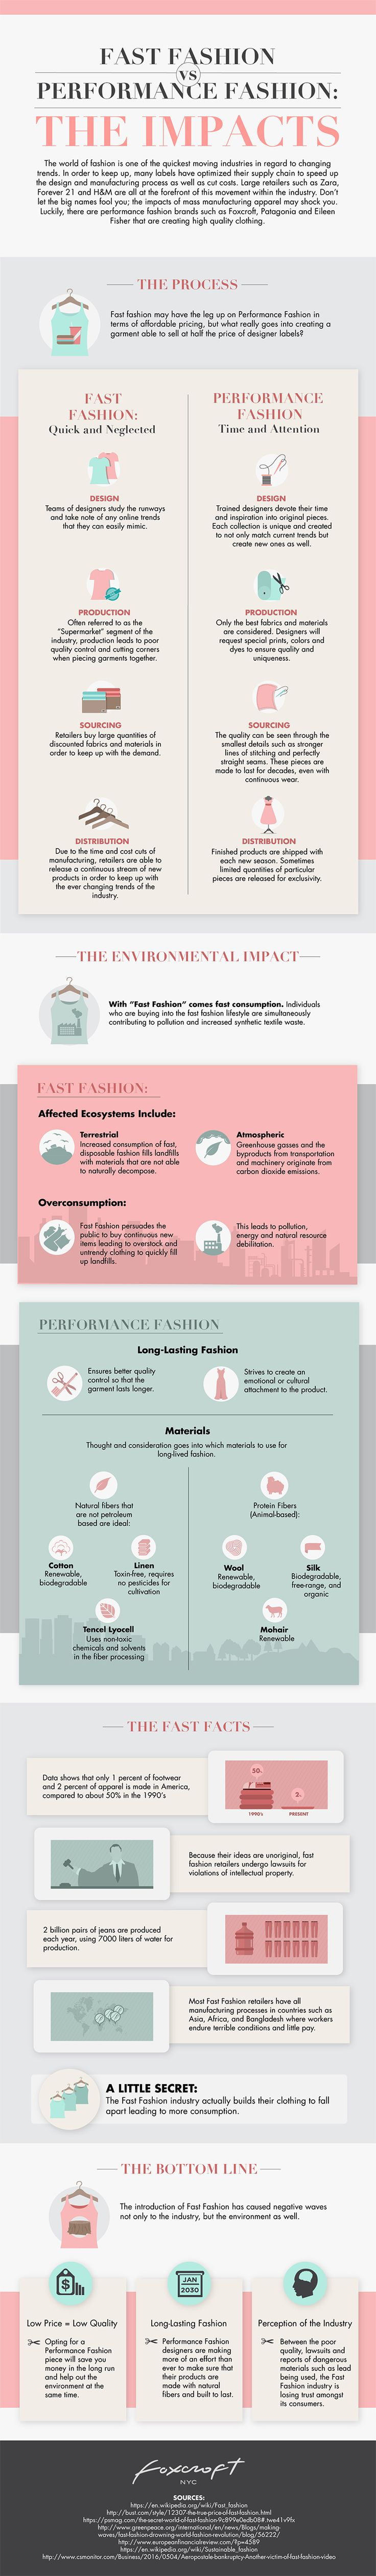 Fast fashion and its effects on the world have been a hot topic for years. It seems that each year, new effects on society and the environment are brought to light. However, along with these